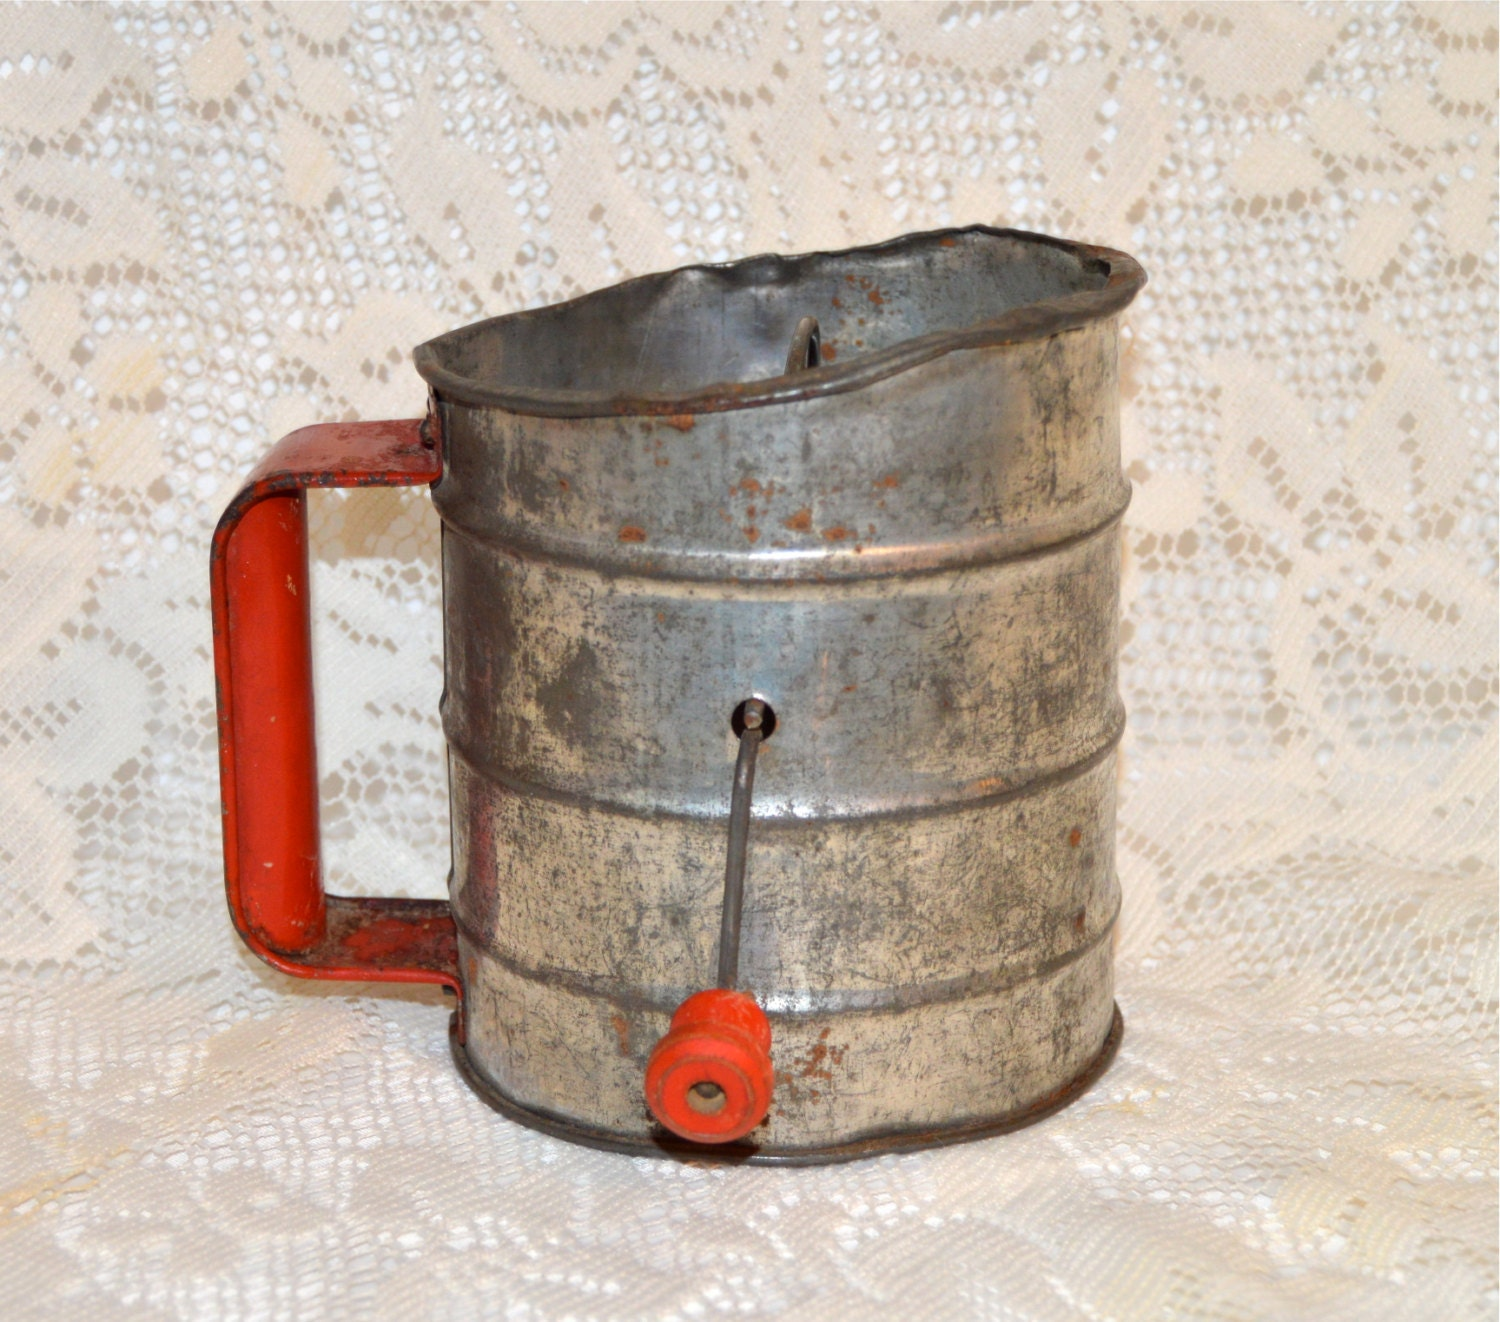 flour sifter - photo #40